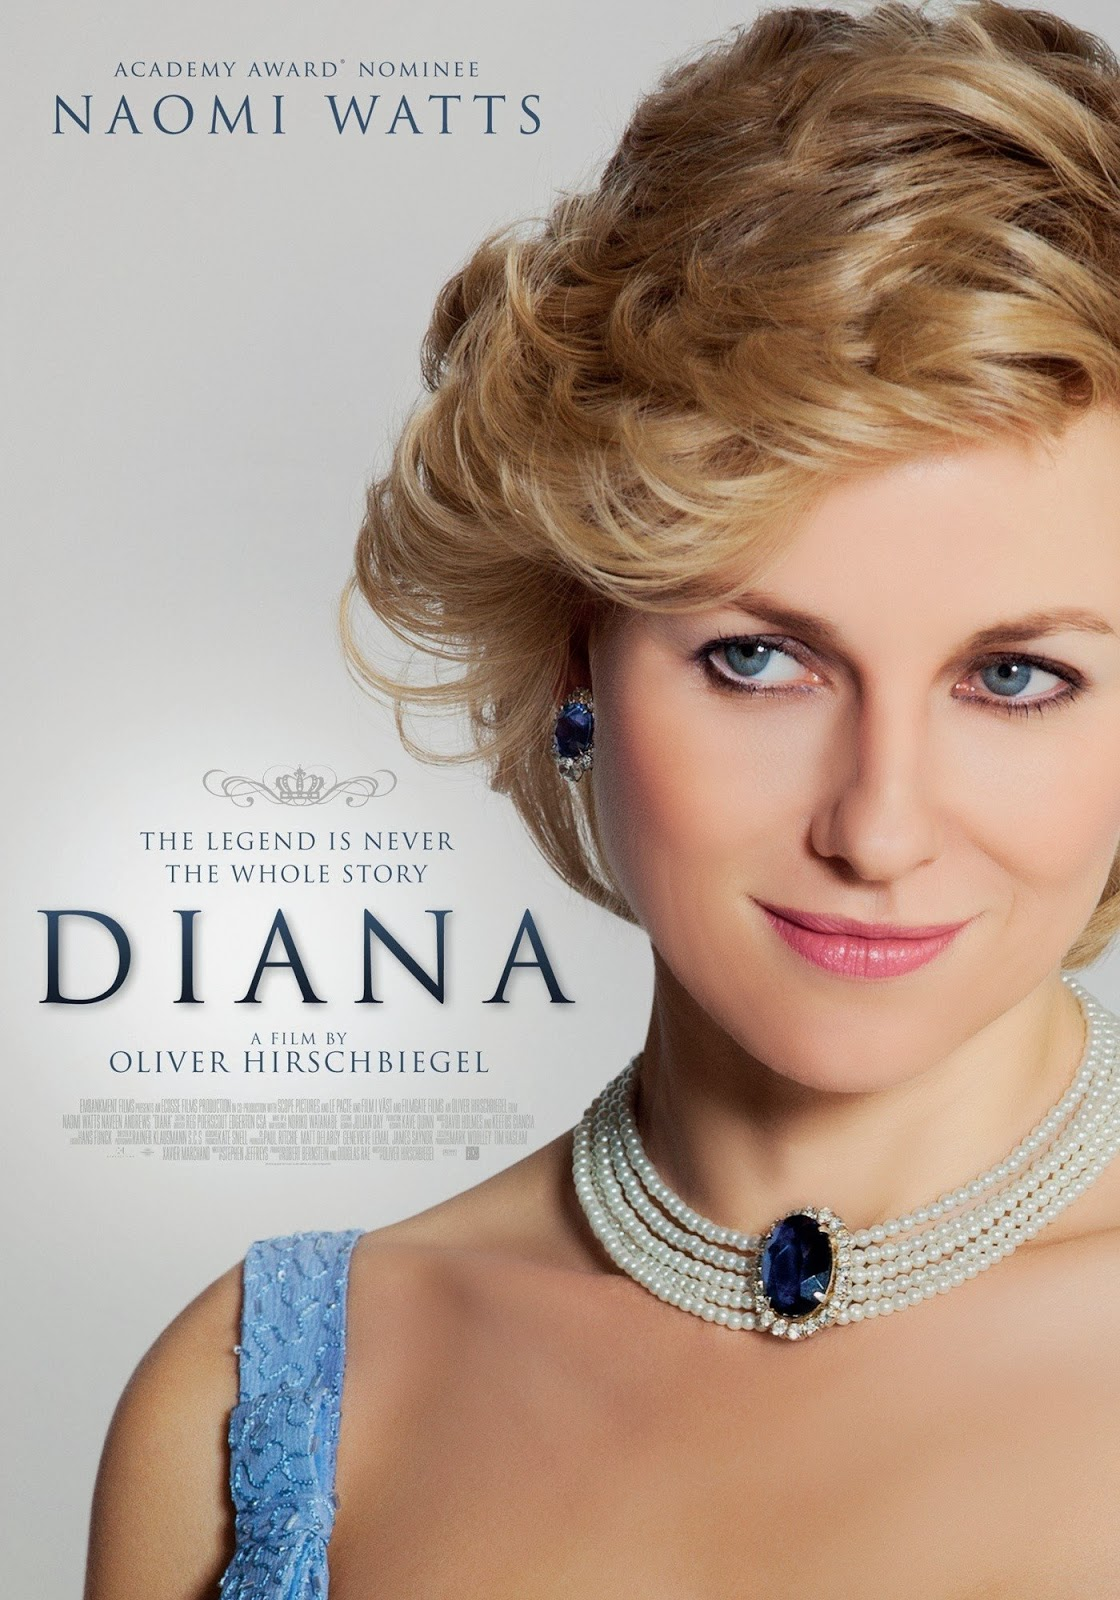 free online personals in diana Results 1 - 10 of 61  book the hotel diana feldberg - located near the slopes, this feldberg hotel is  in the mountains and within 6 mi (10 km)  free self parking.